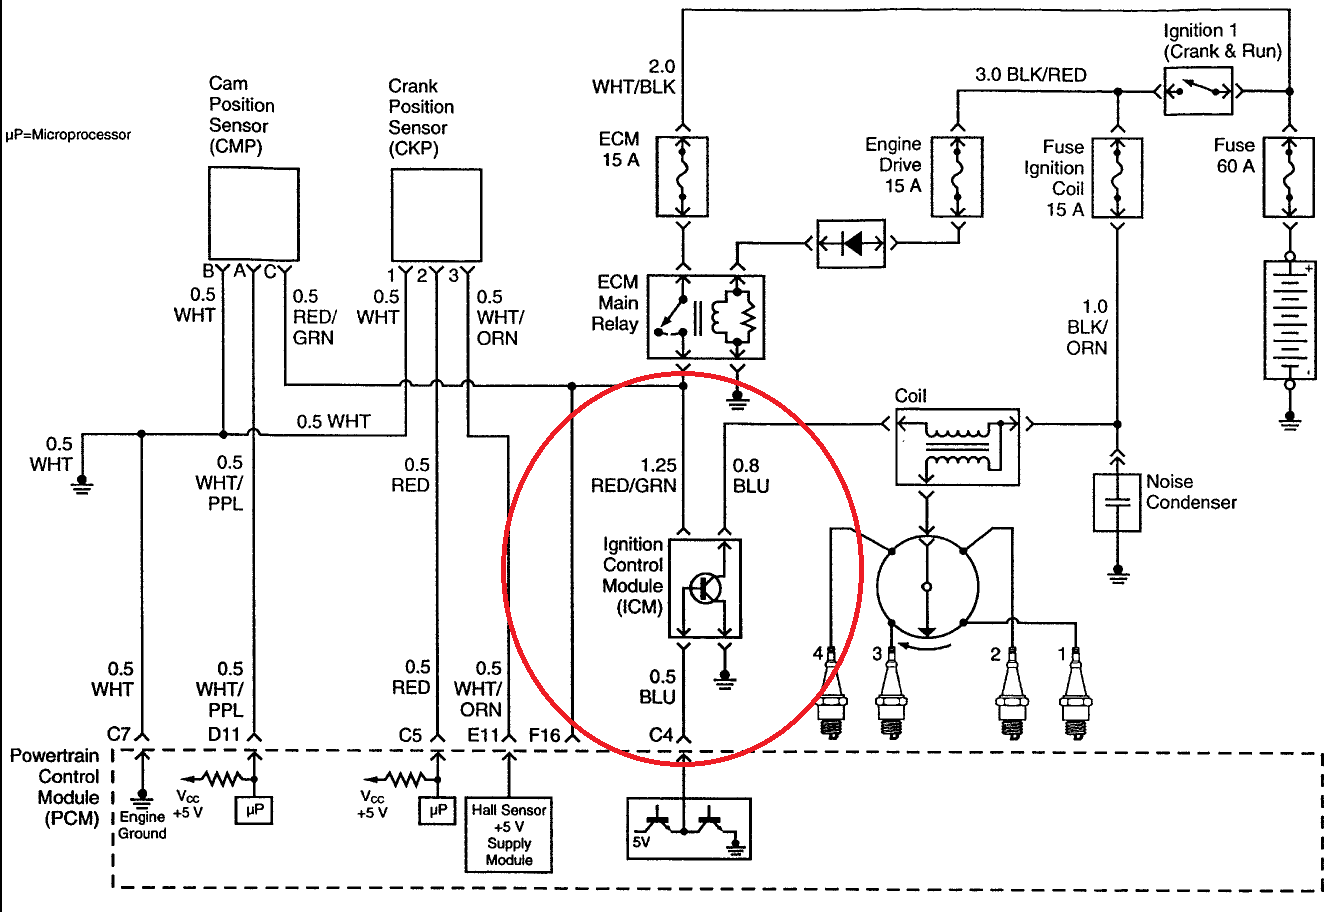 2013 04 02_181735_icm isuzu wiring diagram isuzu relay diagram \u2022 free wiring diagrams 2004 isuzu rodeo wiring diagram at edmiracle.co